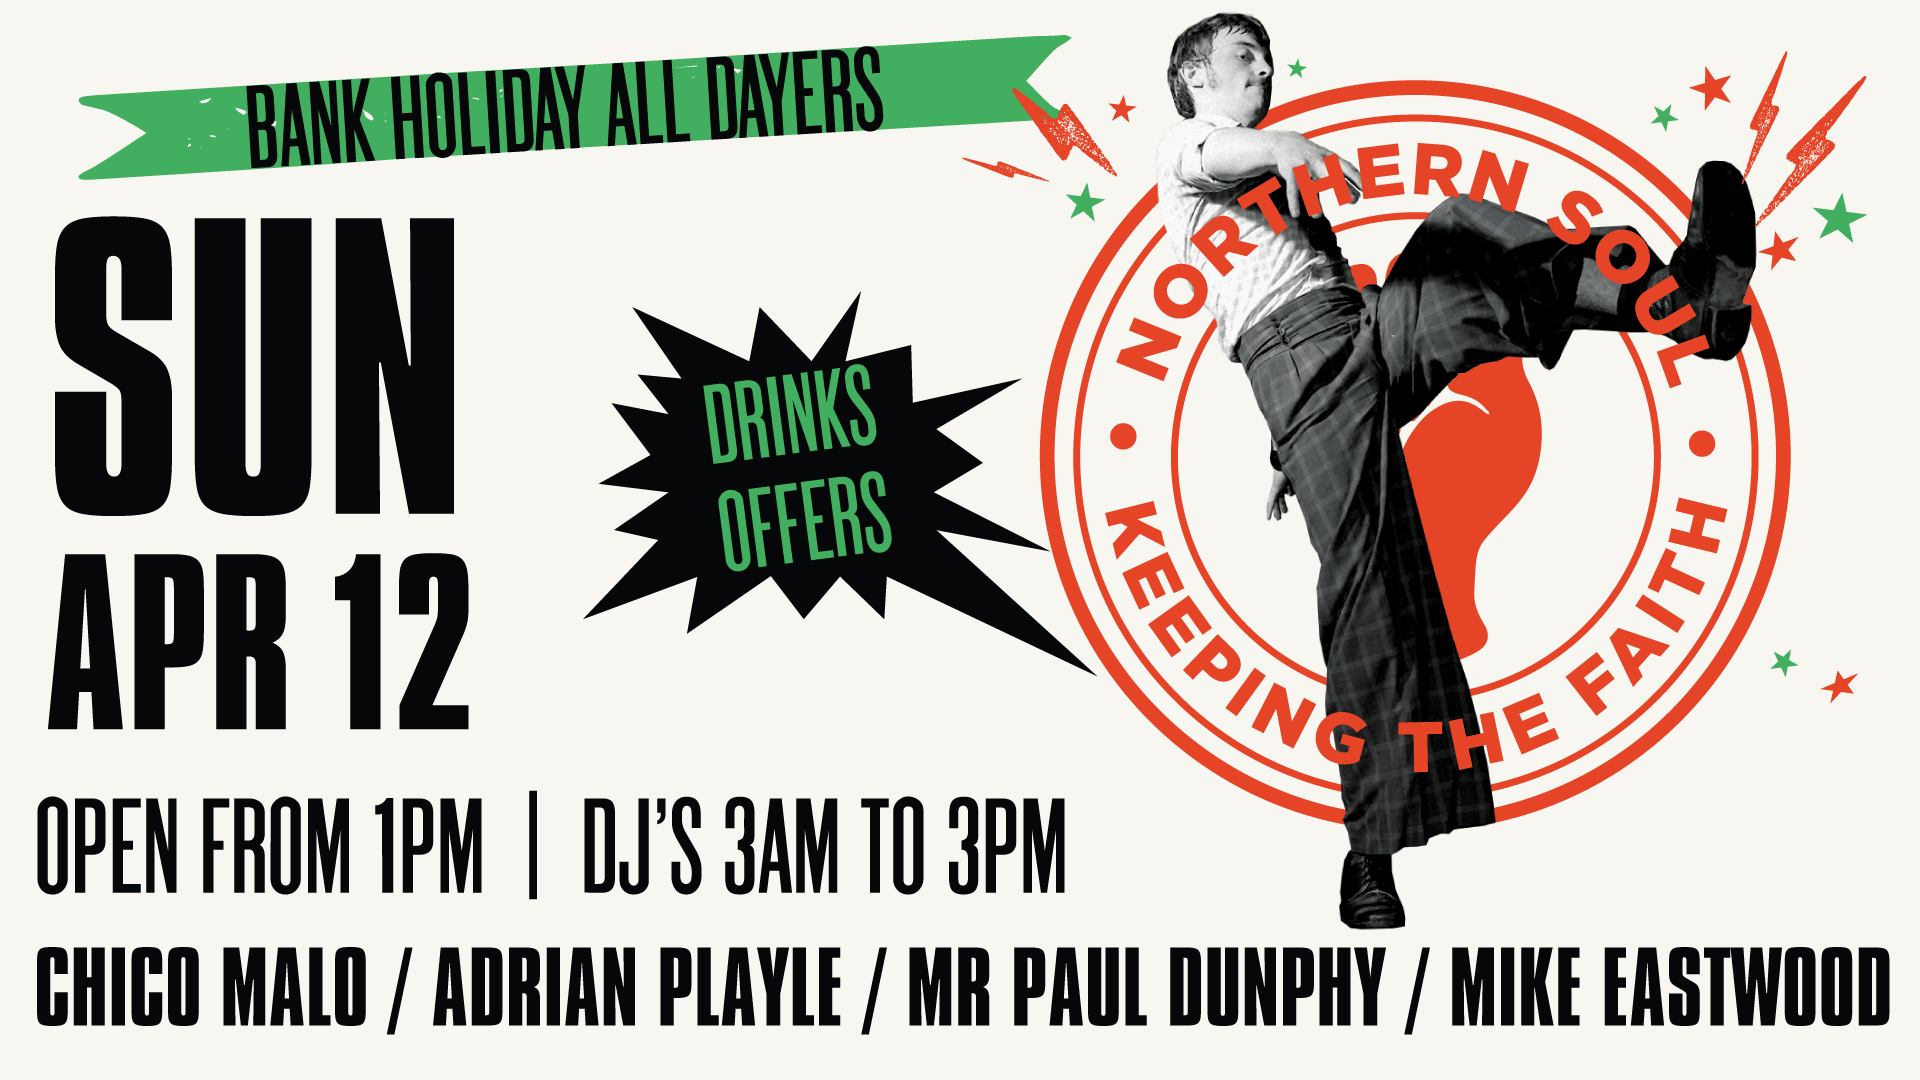 Northern Soul All Dayer - Bank Holiday